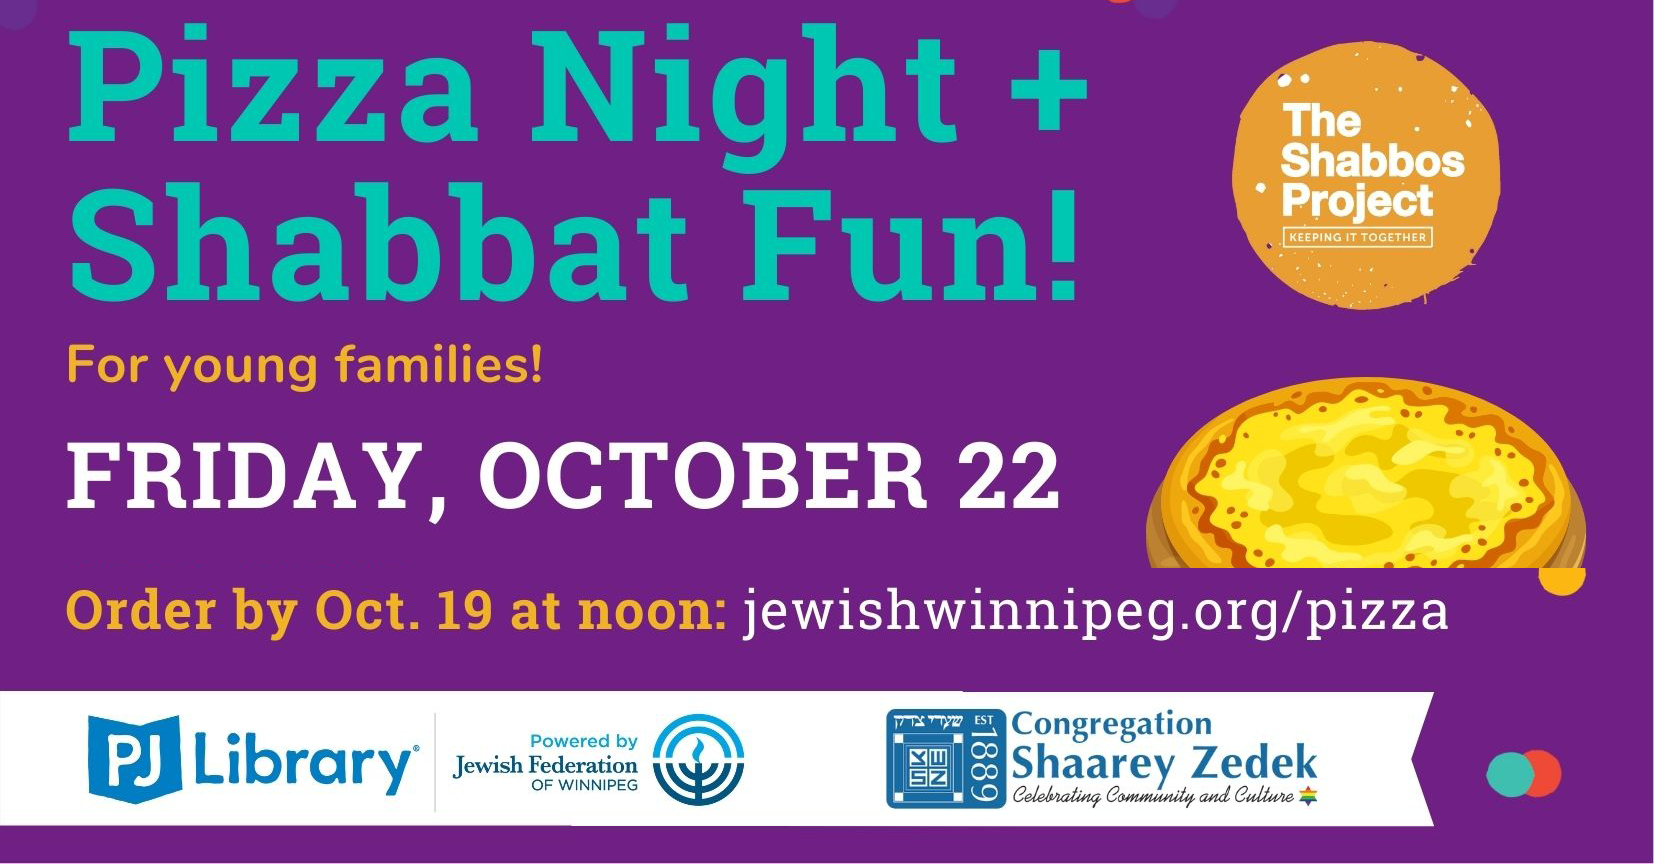 Banner Image for Pizza Night/Shabbat Fun for Young Families